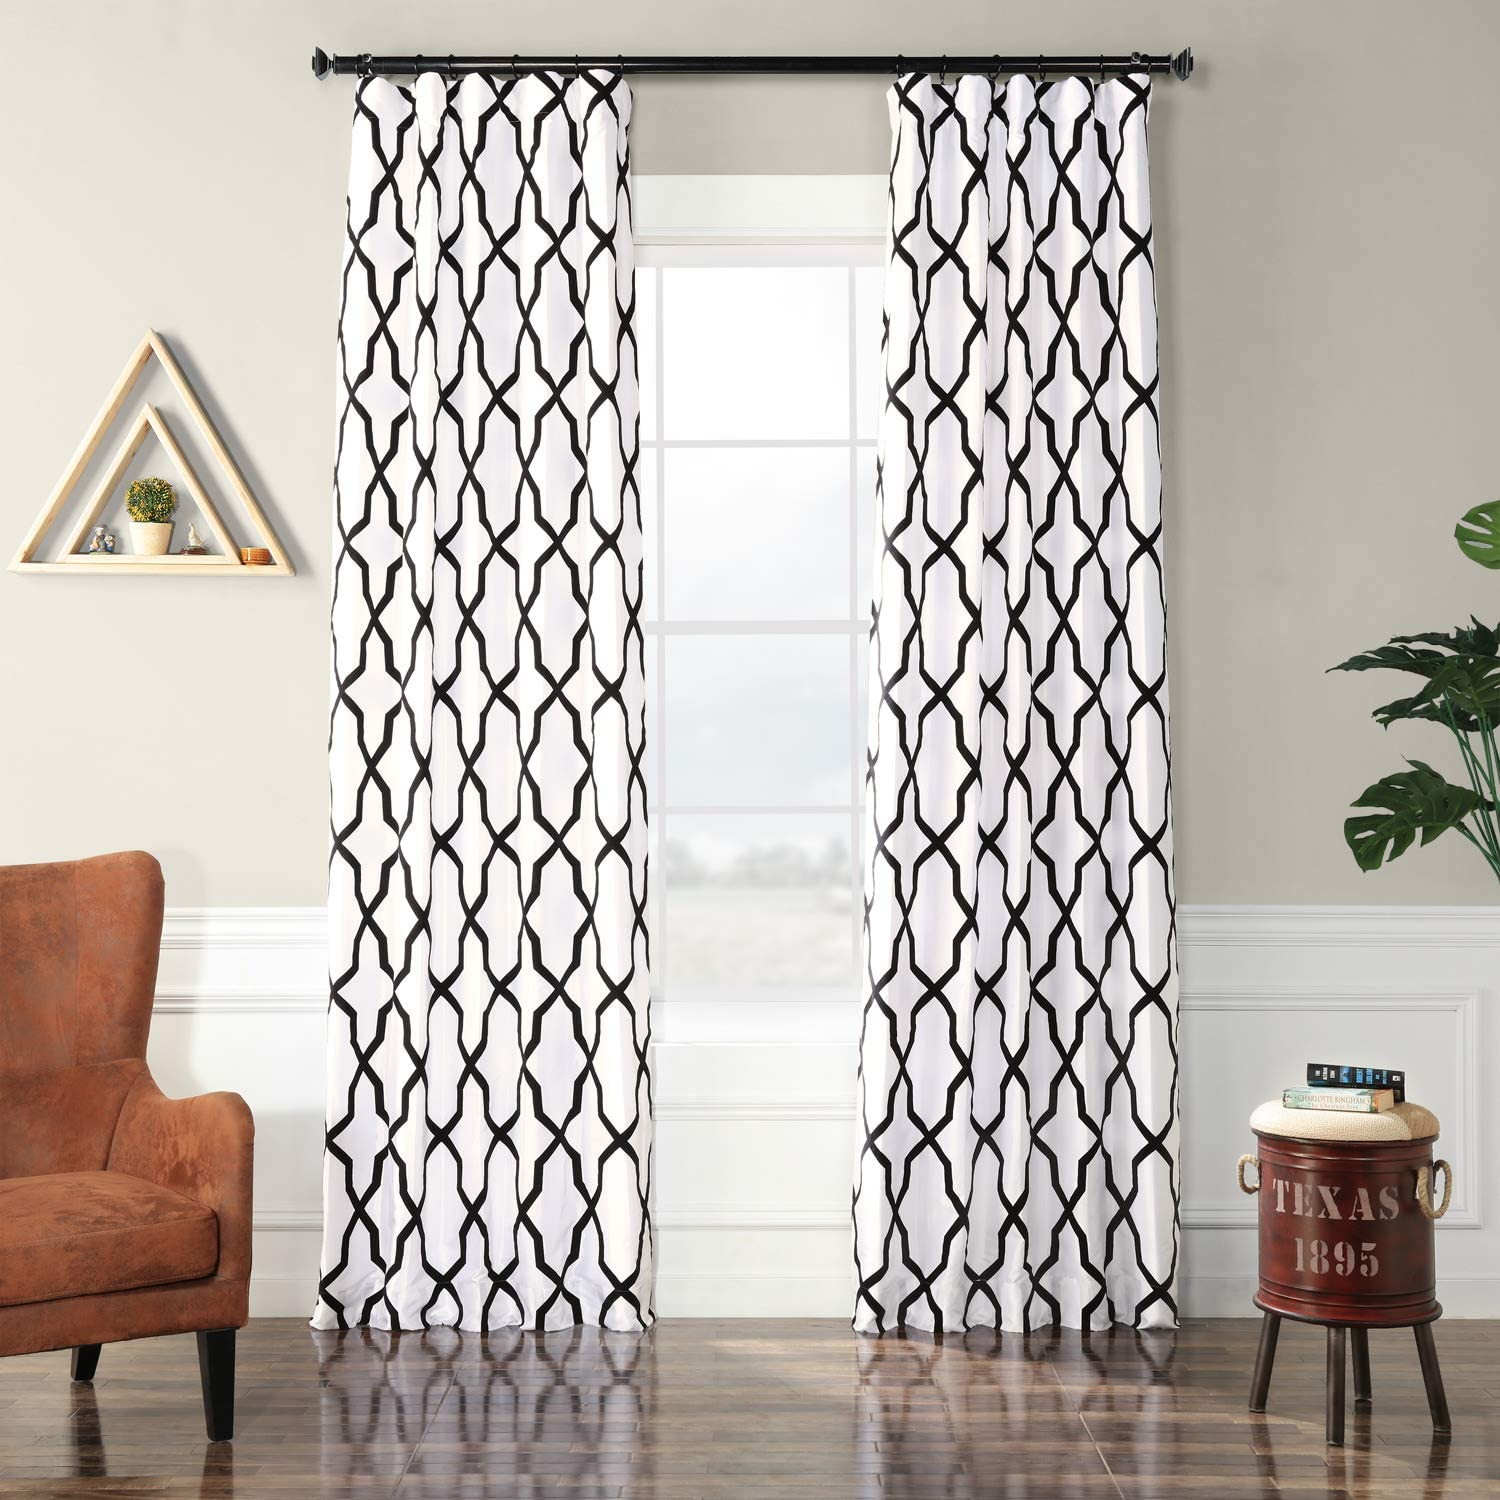 PTFFLK-C35C-108 Pinnacle Flocked Faux Silk Curtain, White & Black, 50 x 108